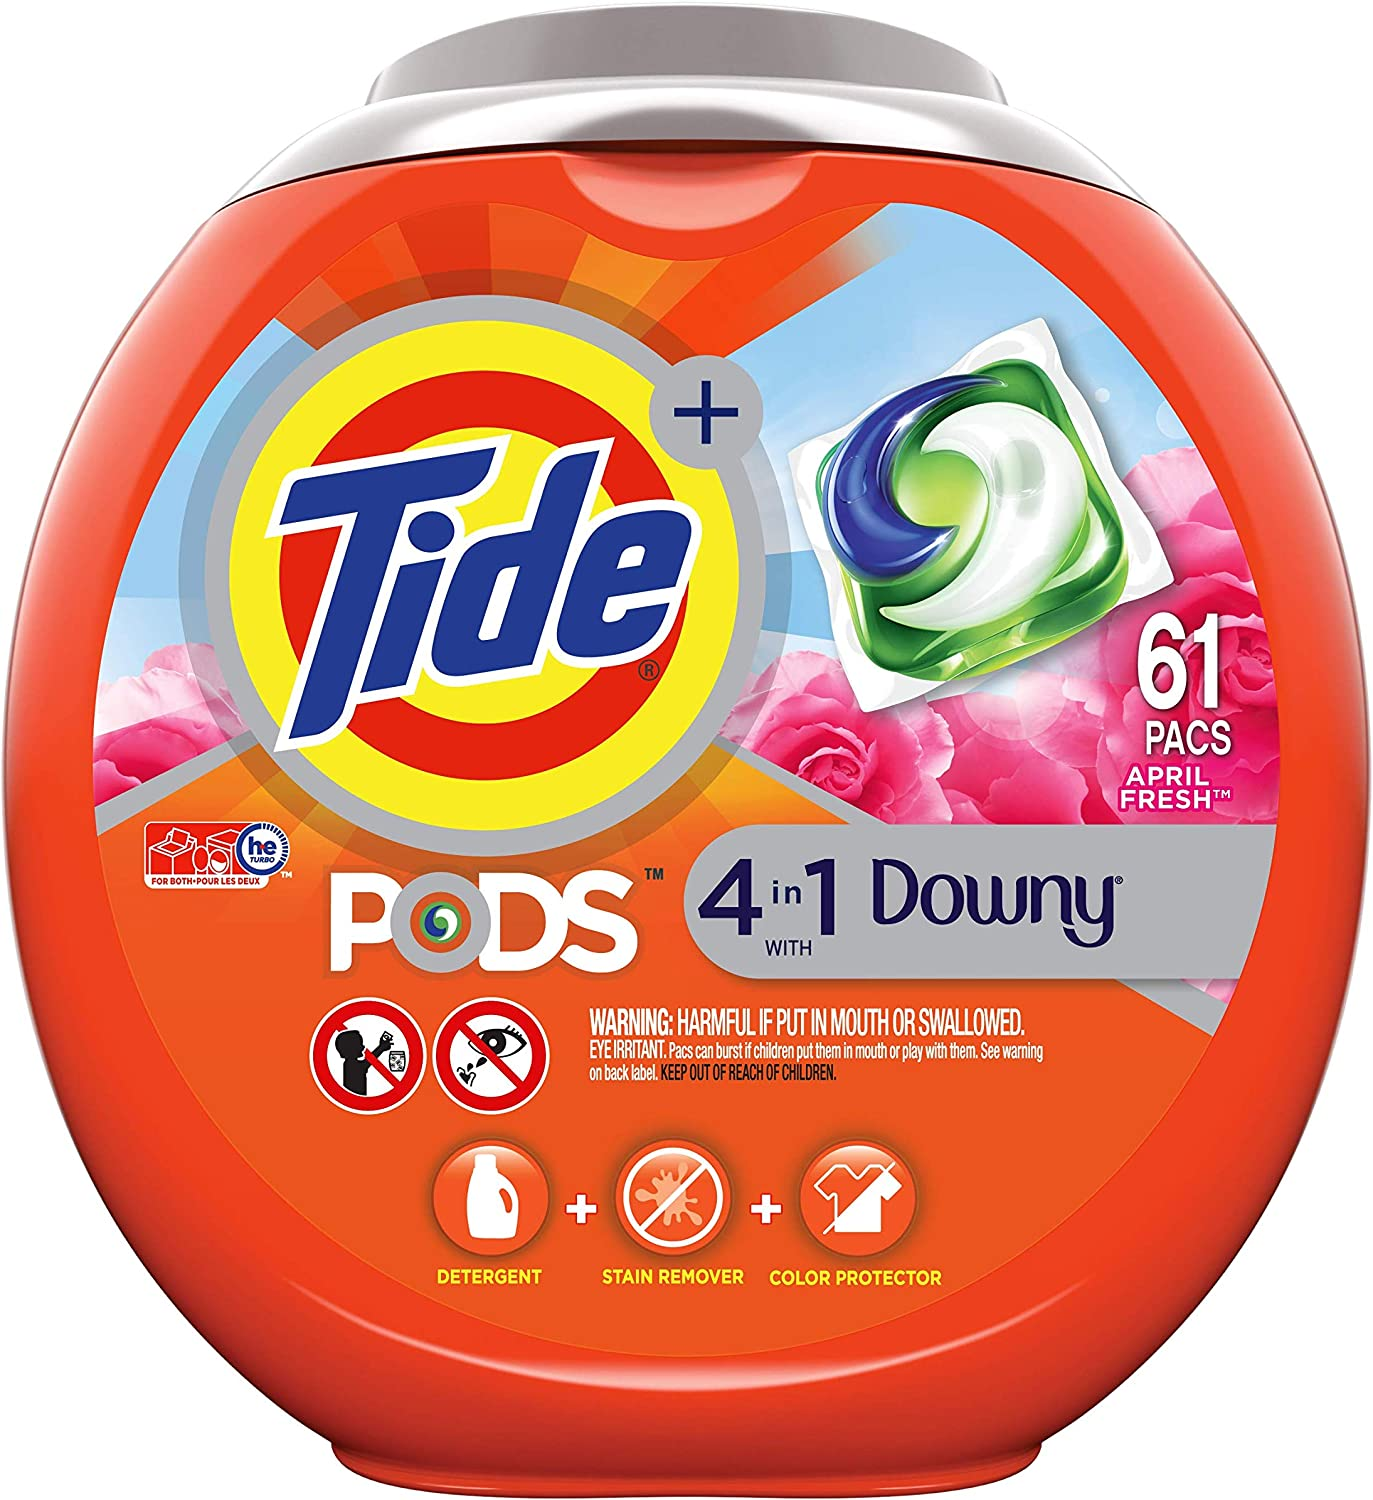 Tide PODS Plus Downy 4 in 1 HE Turbo Laundry Detergent Pacs, April Fresh Scent, 61 Count Tub - Packaging May Vary: Health & Personal Care